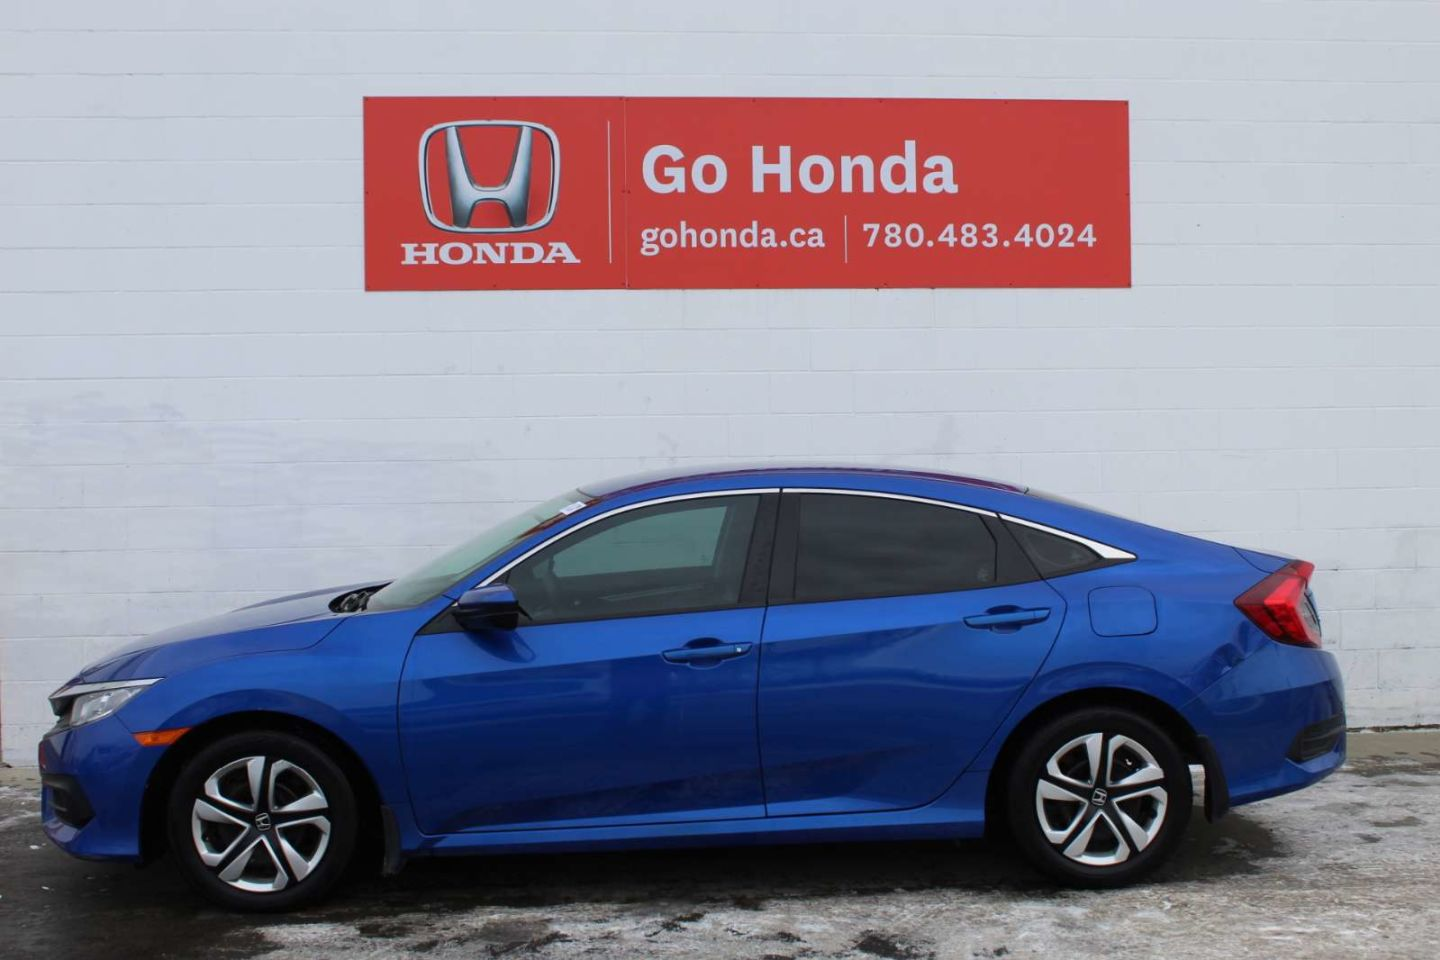 2016 Honda Civic Sedan LX for sale in Edmonton, Alberta